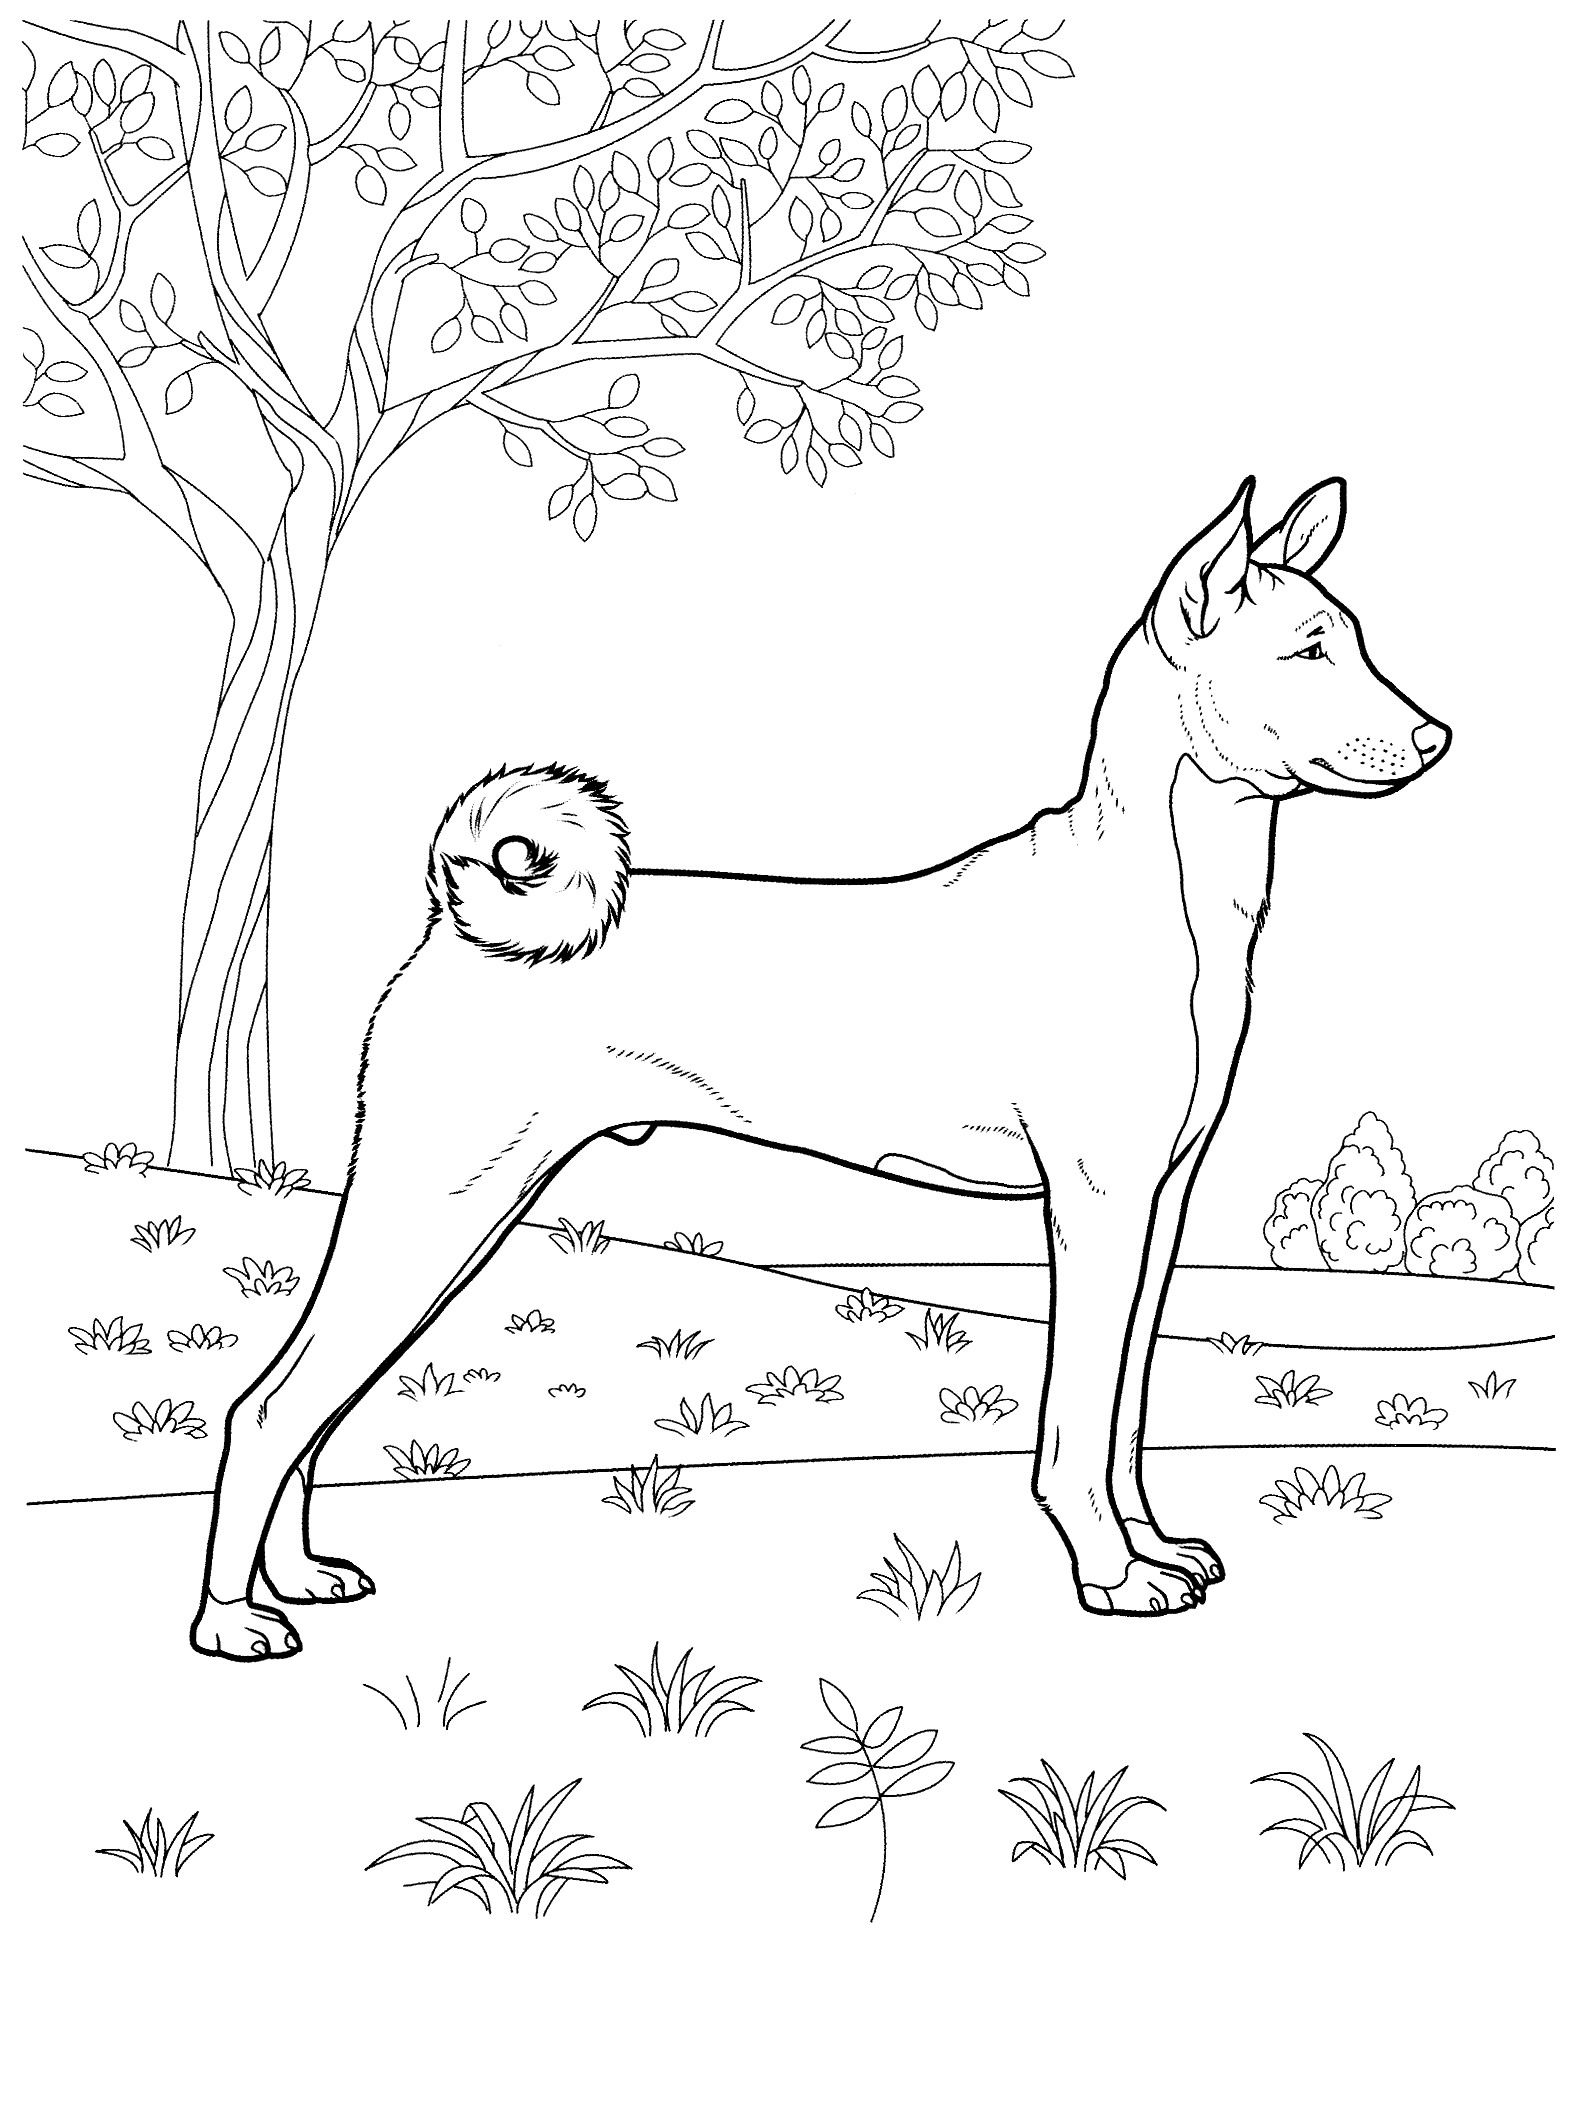 Pin On Favorite Dog Colouring Pages